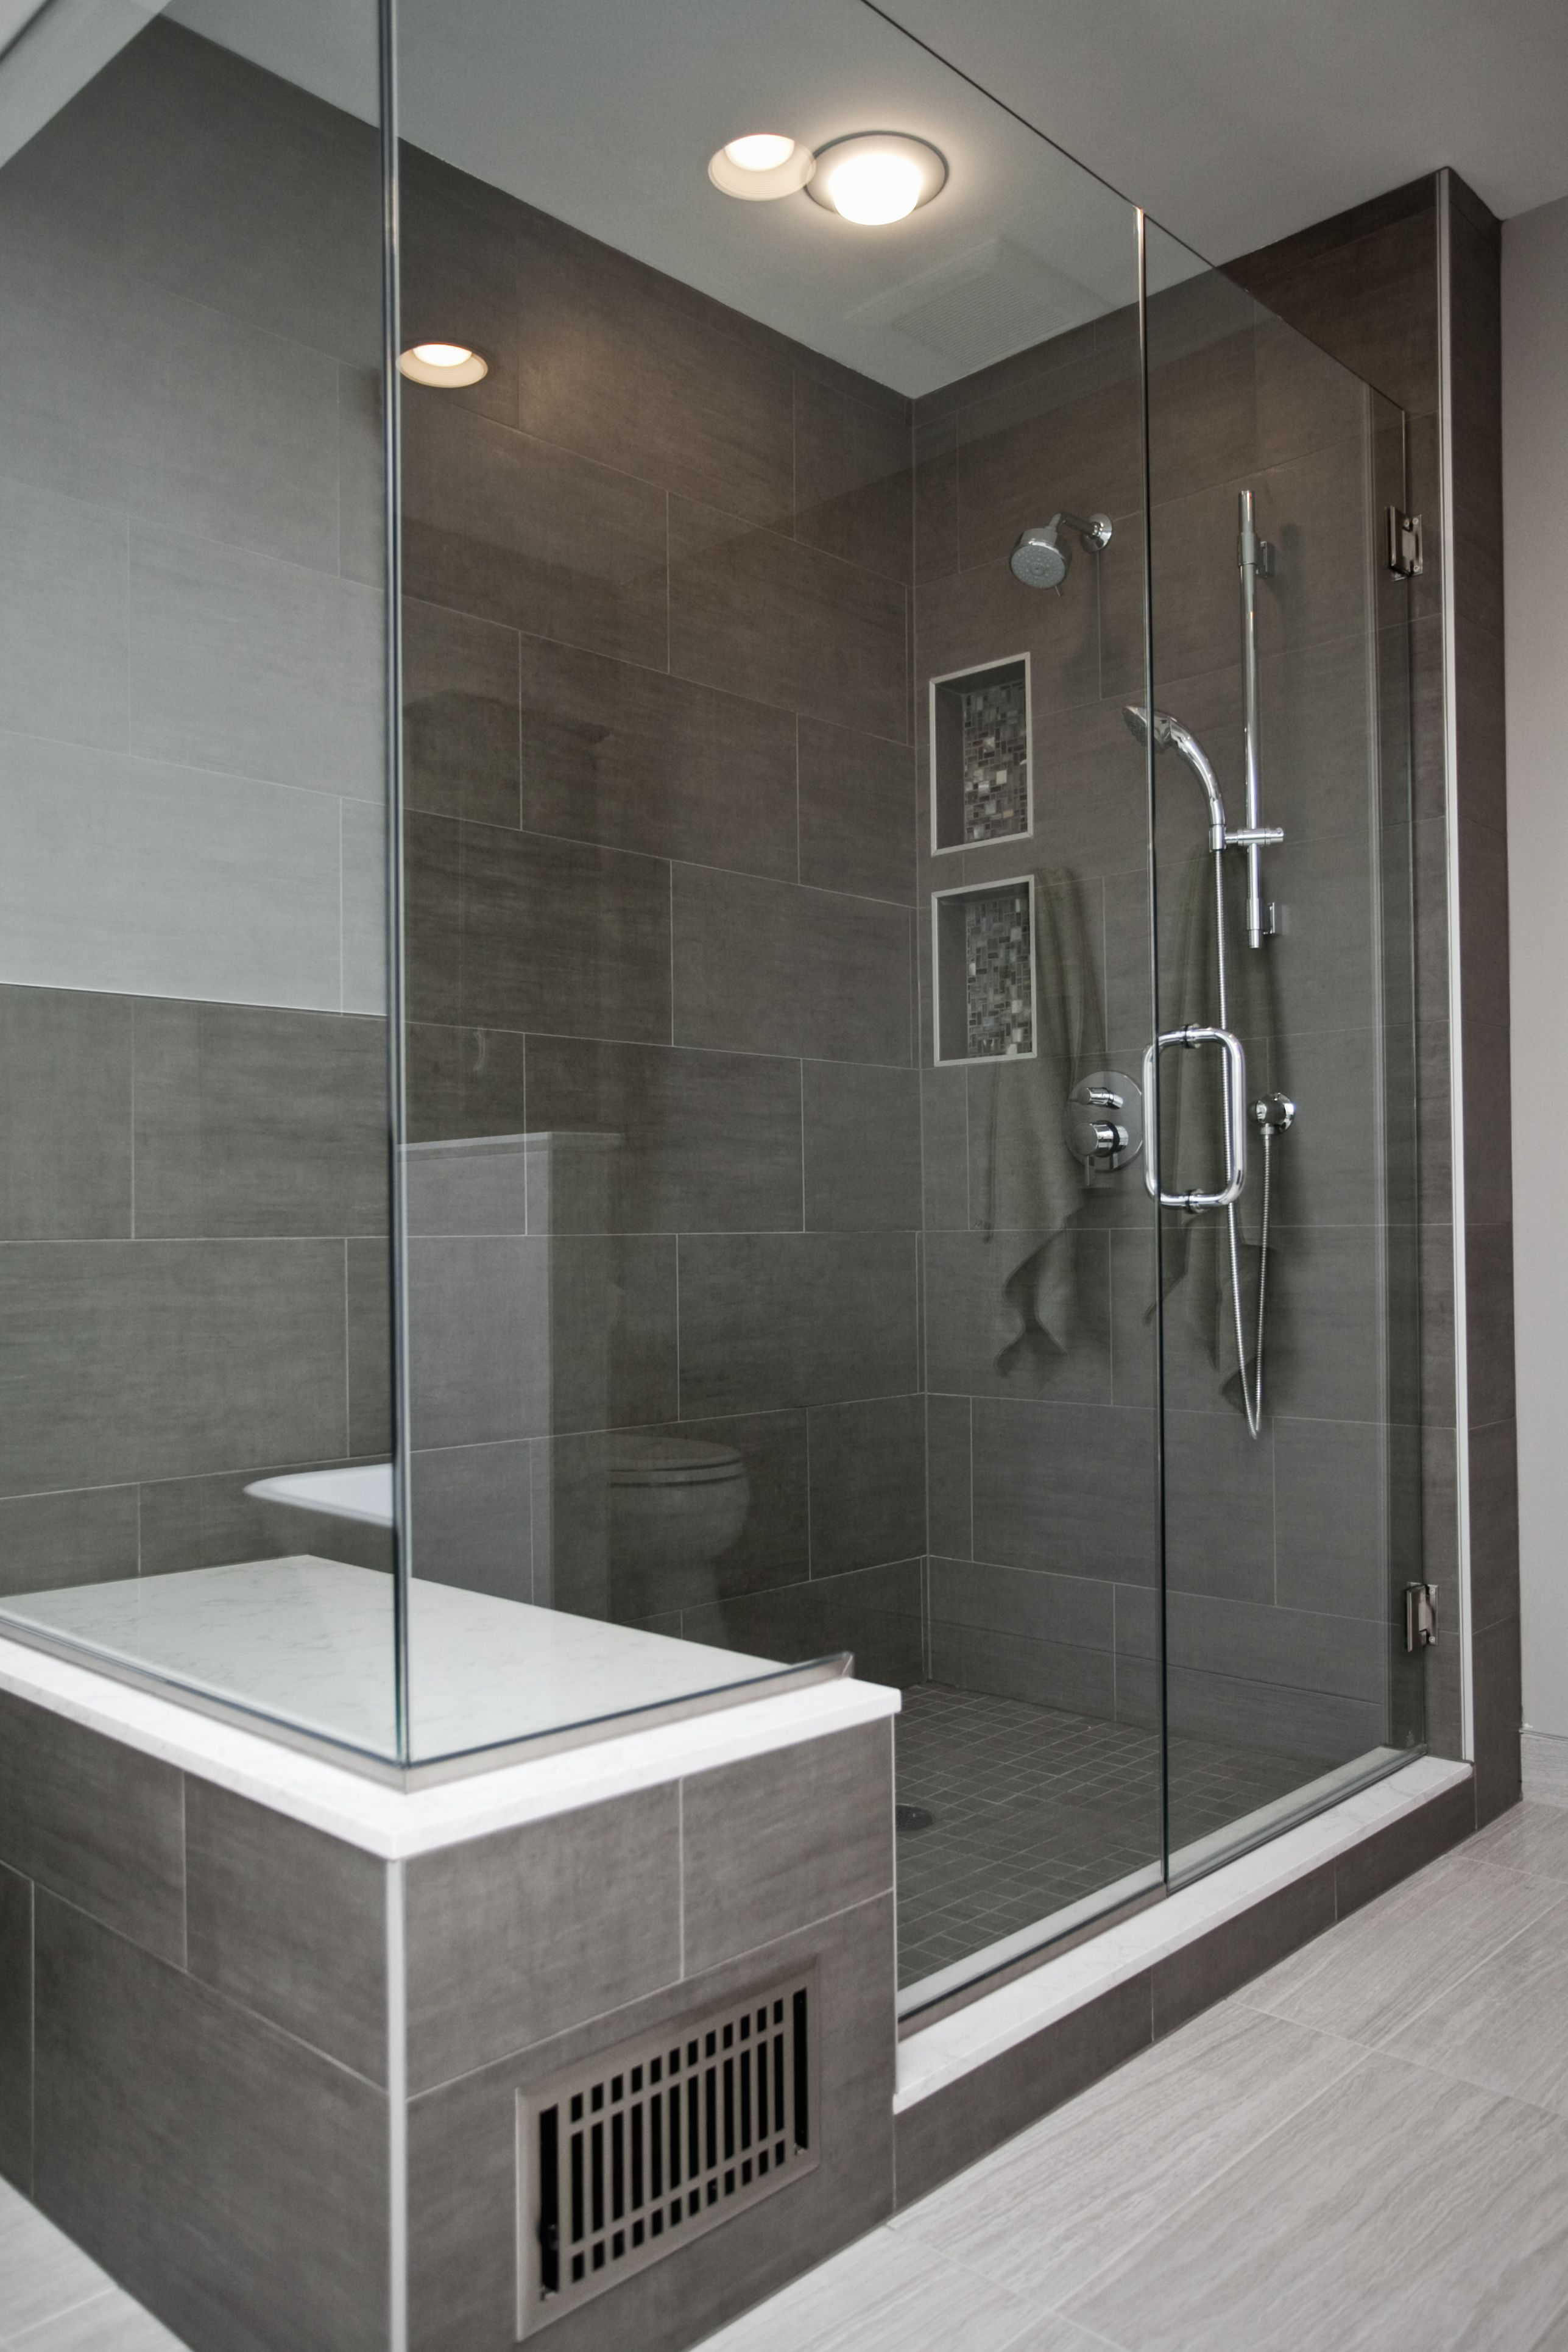 Contemporary frameless shower door hand shower large, frameless single sliding shower doors shower in 2019 shower sliding glass door sliding doors frameless shower doors sliding wall walk in shower doors barn doors mrn shower doors front doors entry doors deliver a seamless and cohesive appearance to the bathroom shower area with this vigo elan adjustable frameless sliding shower door in matte black., best shower doors 2019 sliding swing hinged and curved sliding shower doors. probably the #framelessslidingshowerdoors